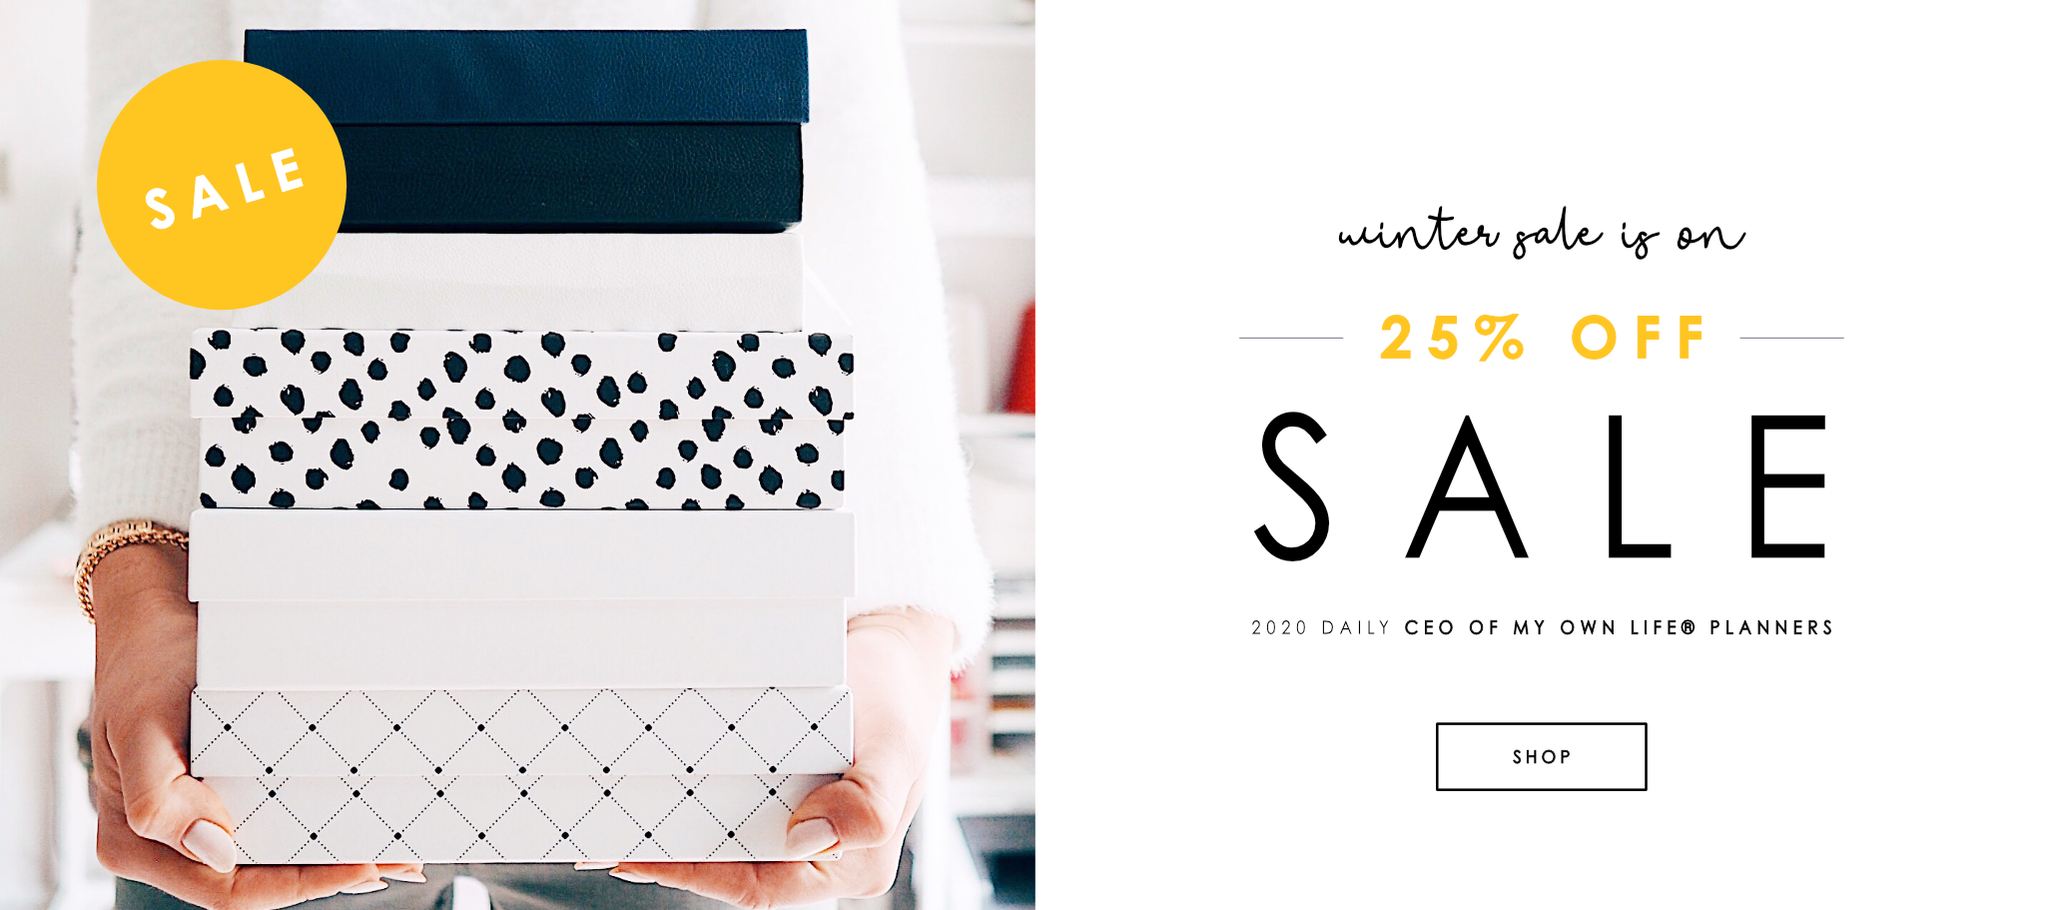 Shop 2020 daily CEO of My Own Life® planners | Winter Sale 25% OFF